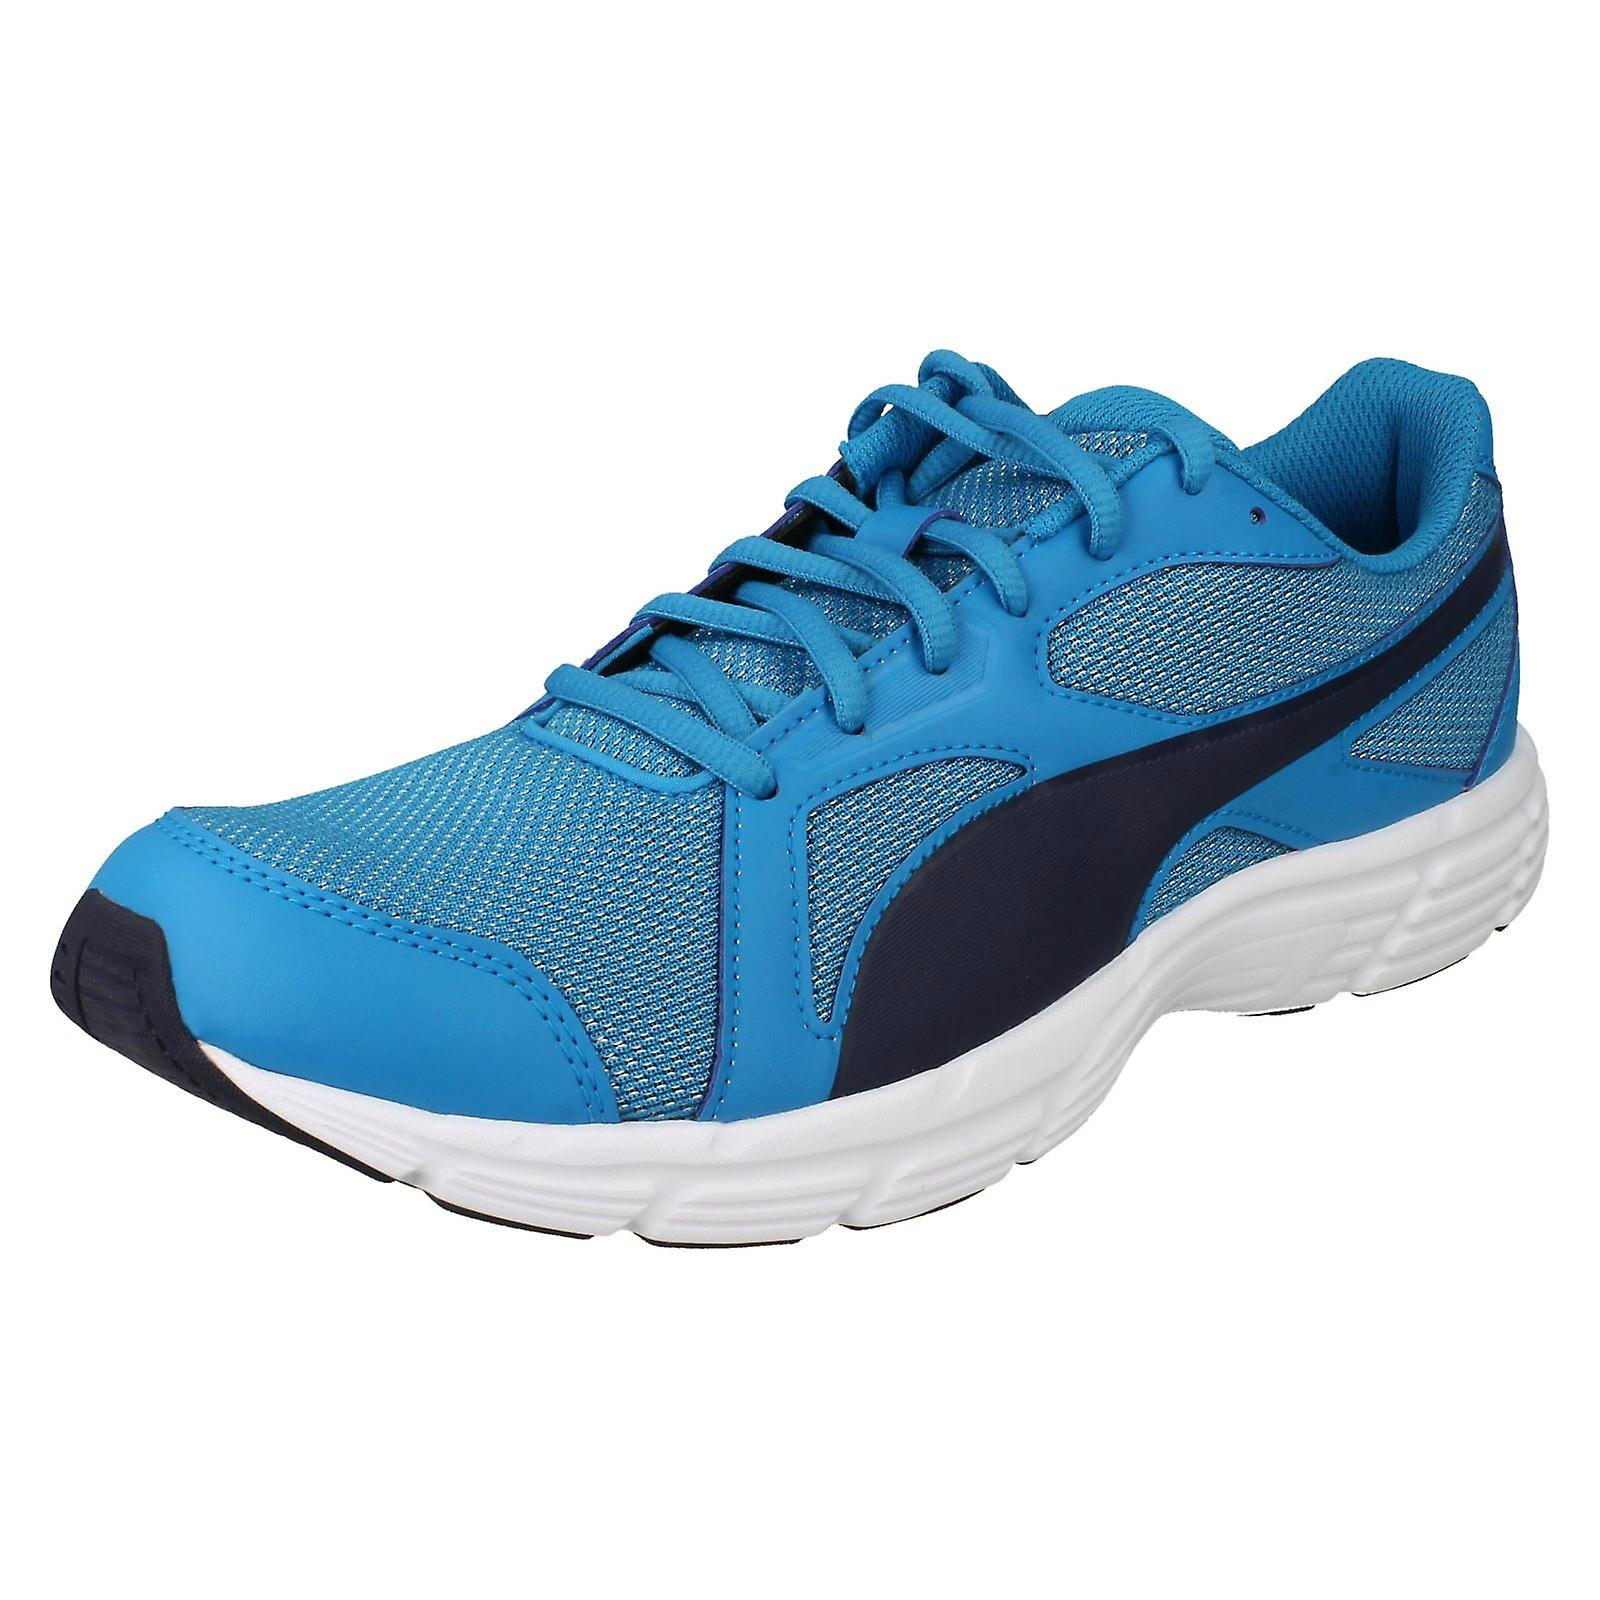 new concept e94f7 d9d4b Ladies Puma Lace Up Trainers Axis V4 Mesh 360581 - Atomic Blue/Peacoat - UK  Size 6.5 - EU Size 40 - US Size 7.5